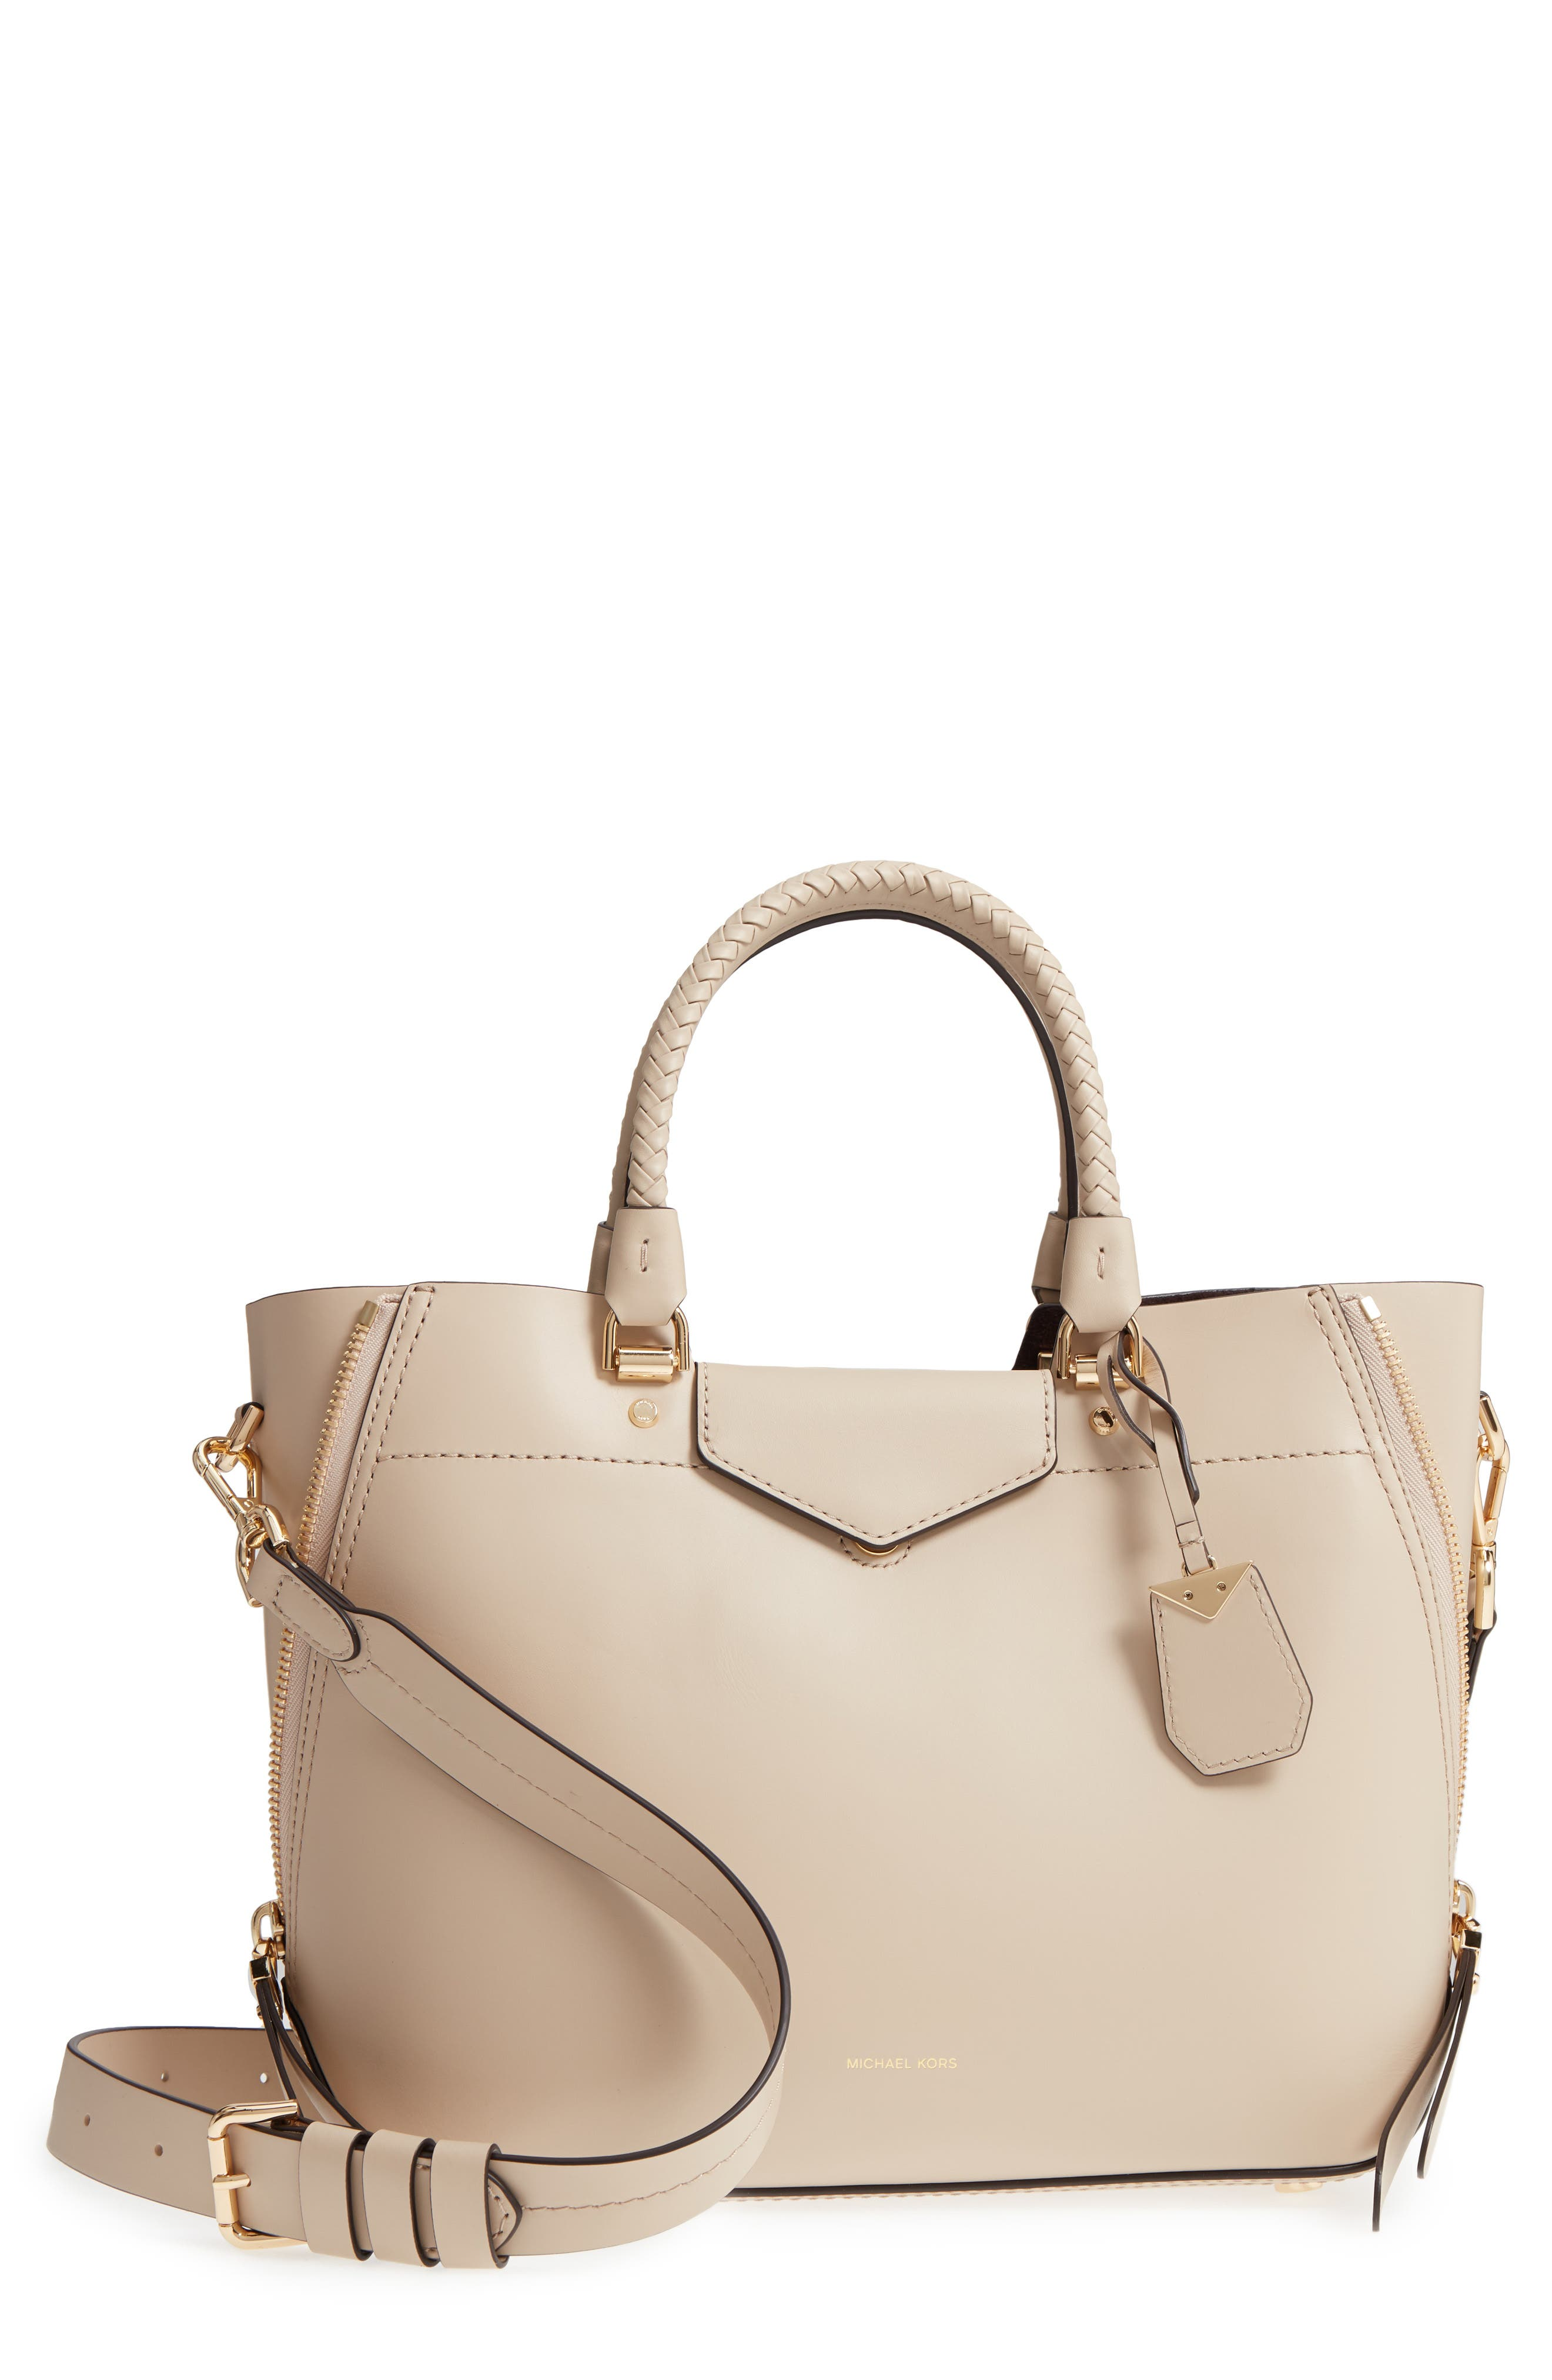 MICHAEL Michael Kors Blakely Leather Satchel